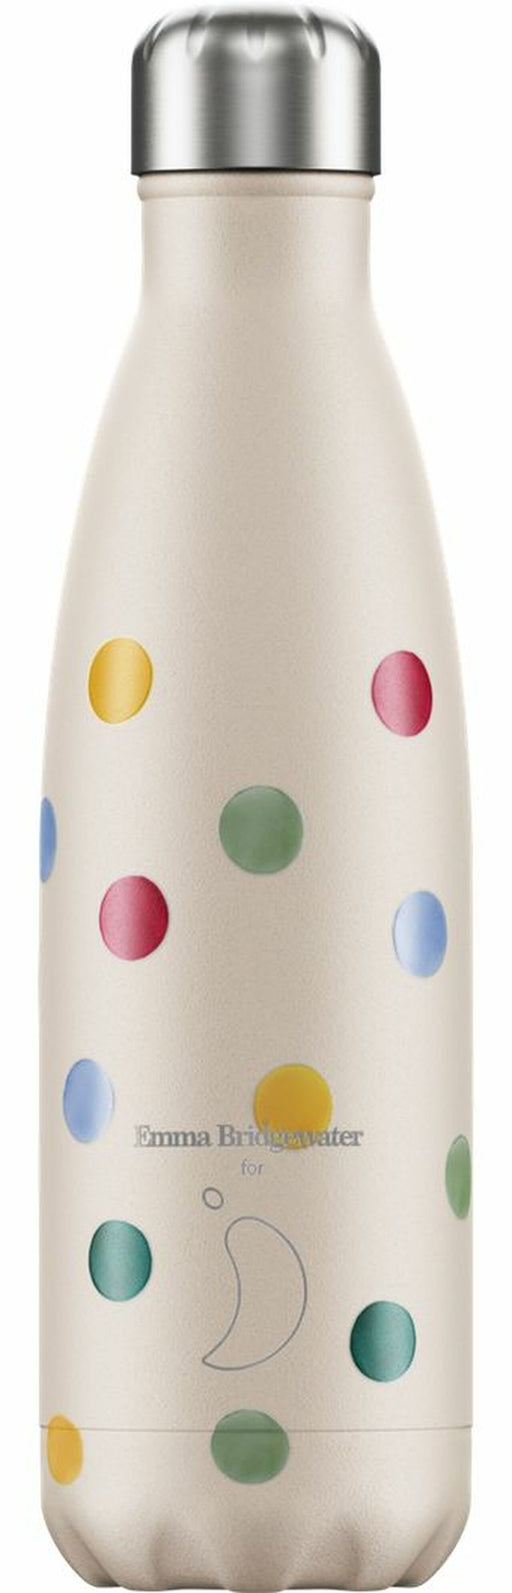 Chilly's Bottle 500ml Emma Bridgewater Polka